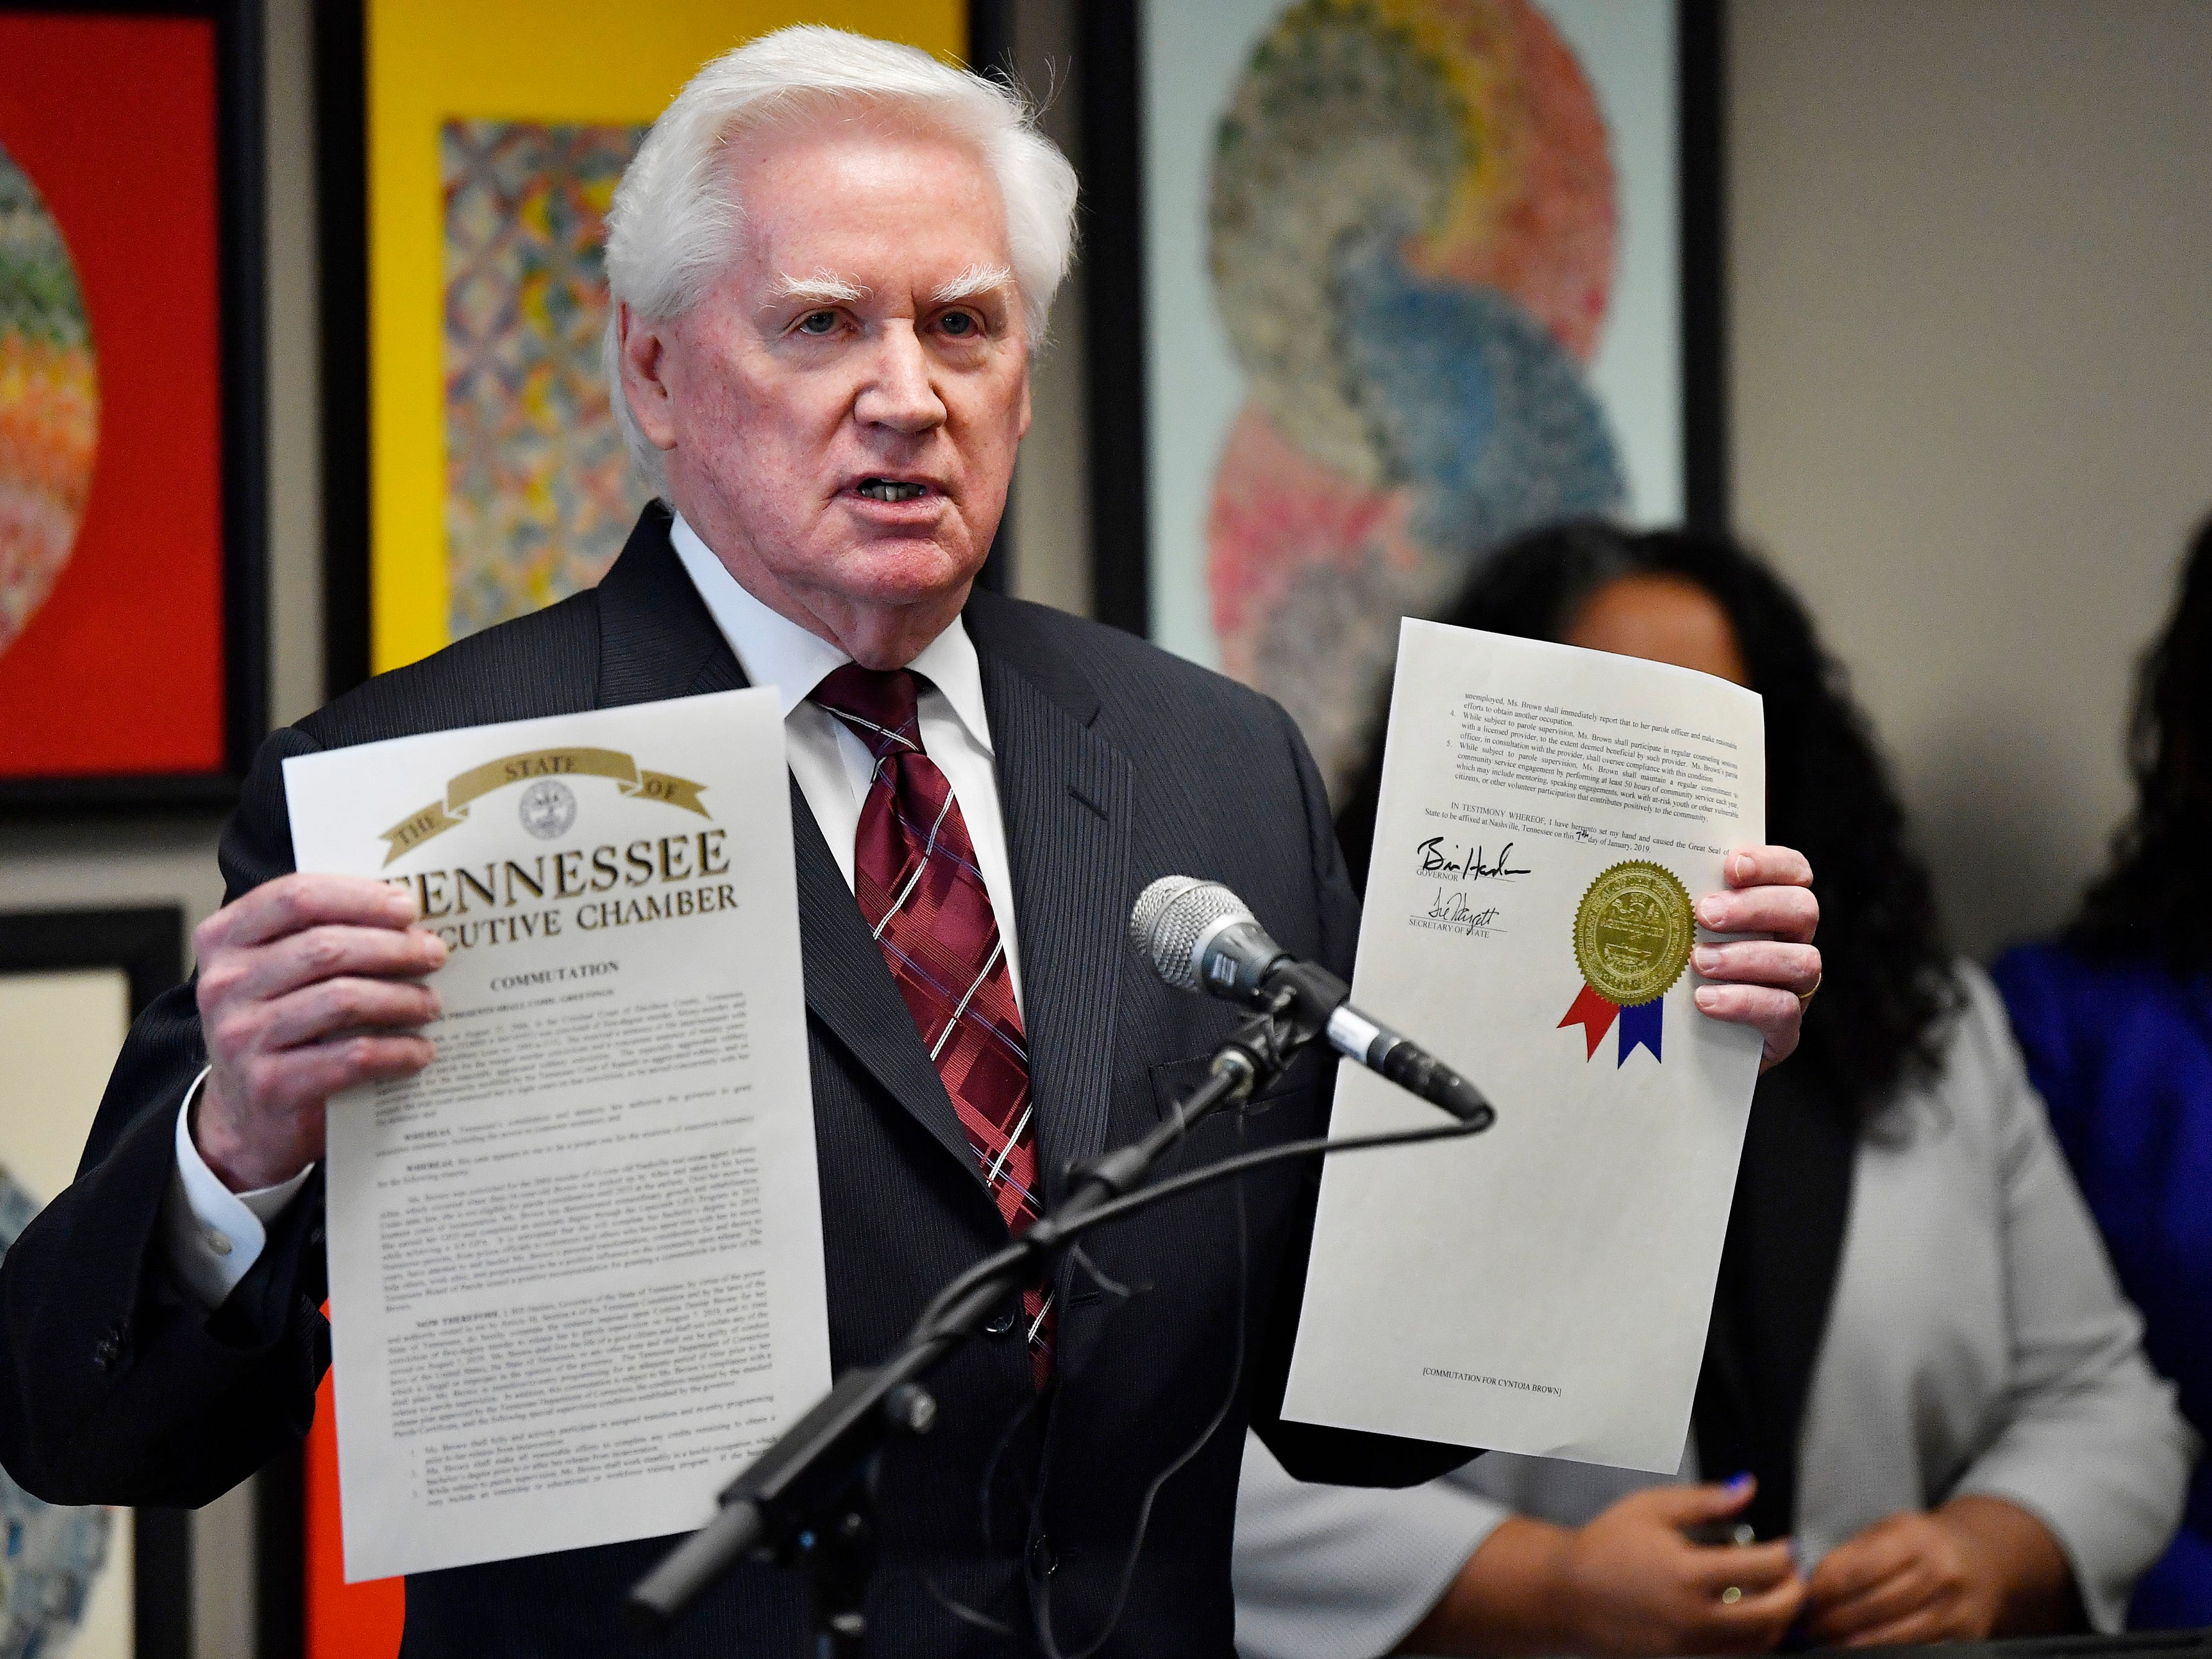 Ed Yarbrough holds the executive clemency order from Gov. Bill Haslam at a press conference Monday, Jan. 7, 2019, in Nashville, Tenn., after the governor granted full clemency to Cyntoia Brown, and set an Aug. 7 release from prison.